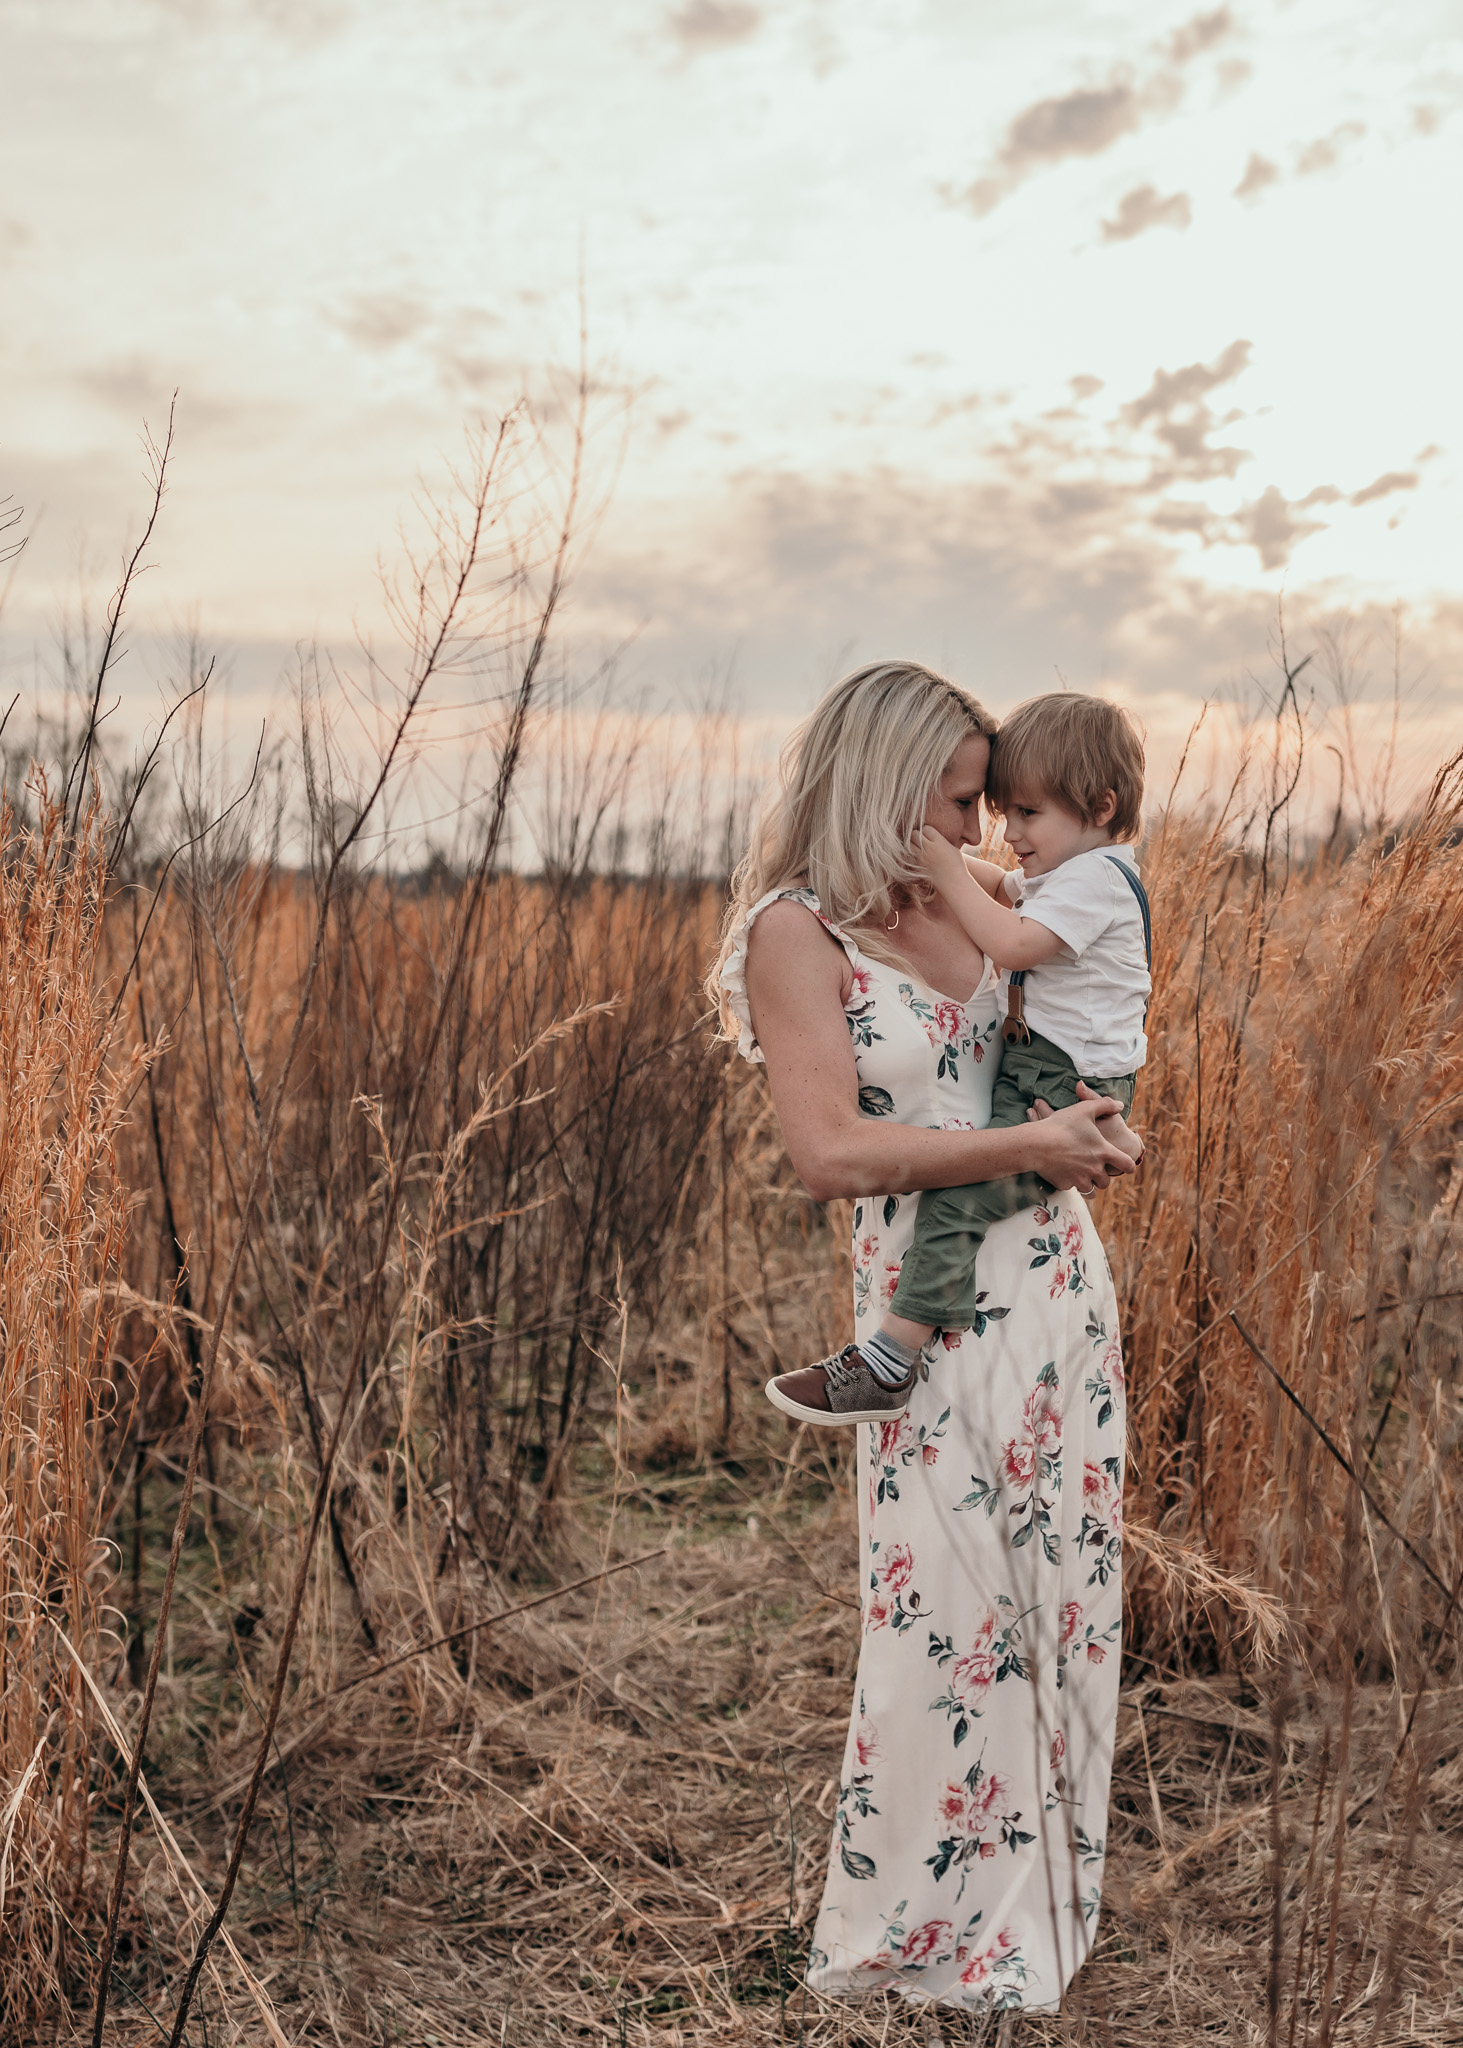 Mother Embracing Son in Field